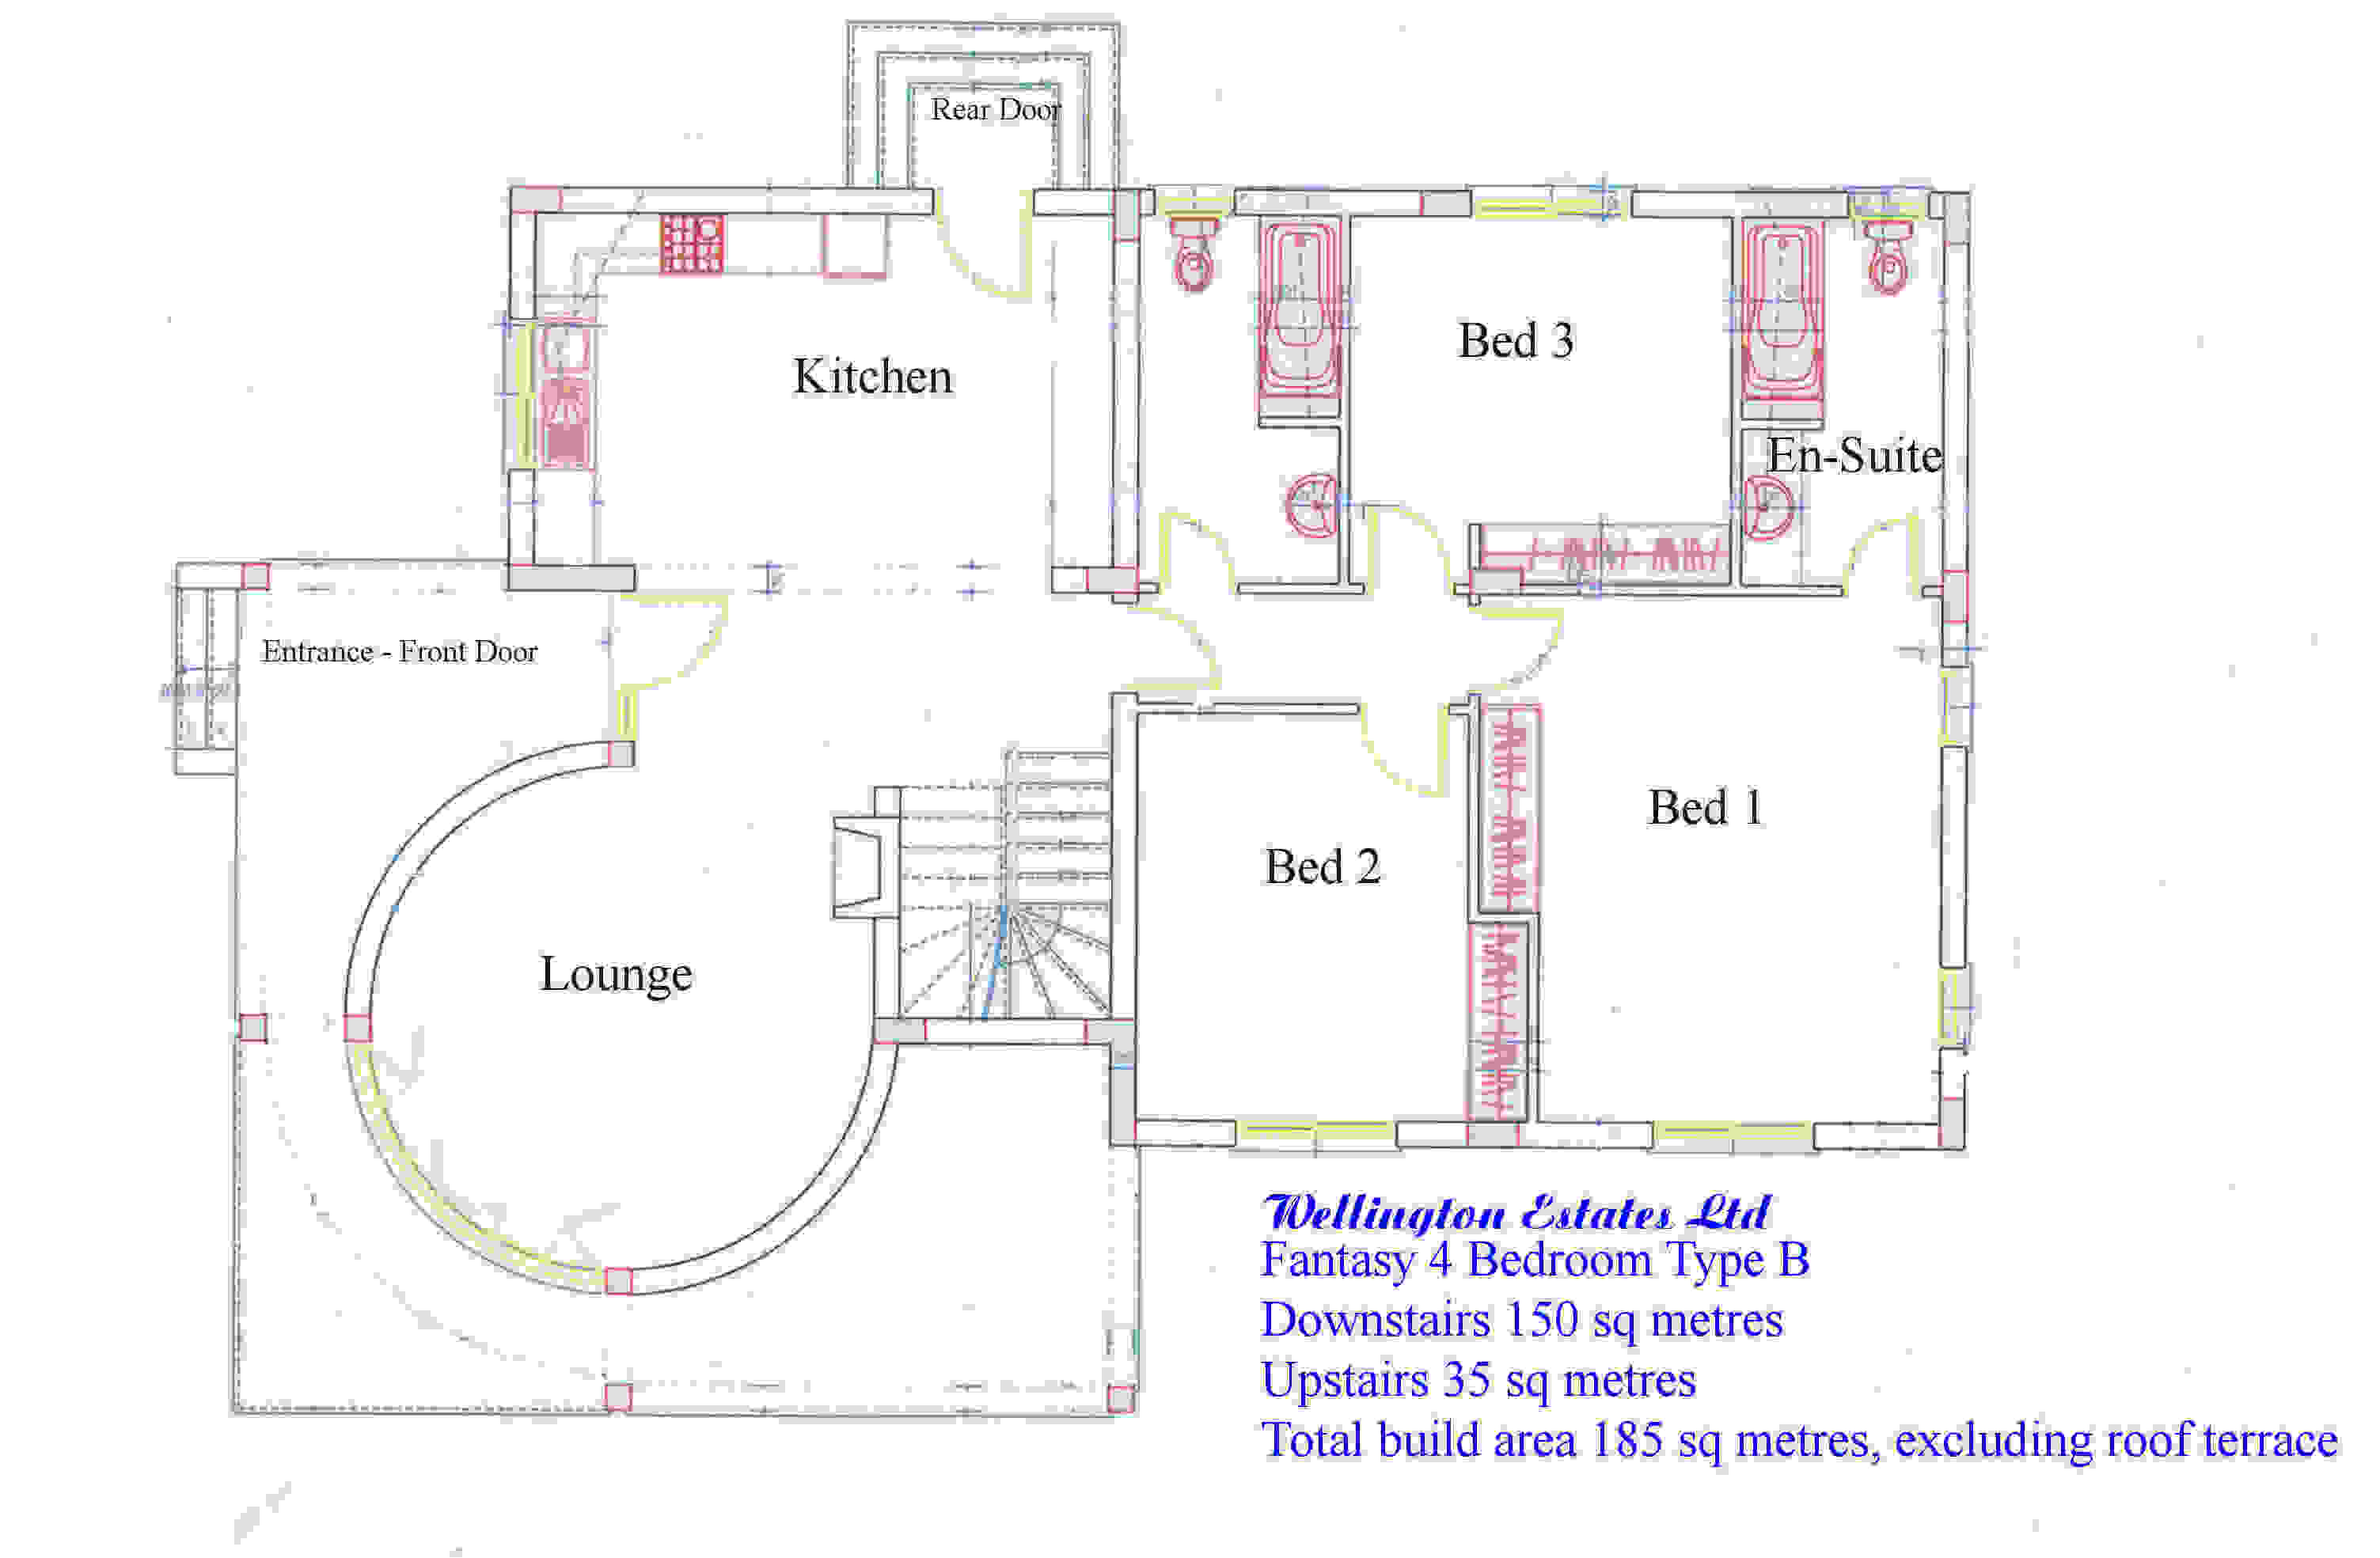 Fantasy Tower 4 Bedroom Bungalow Ground Floor Plan